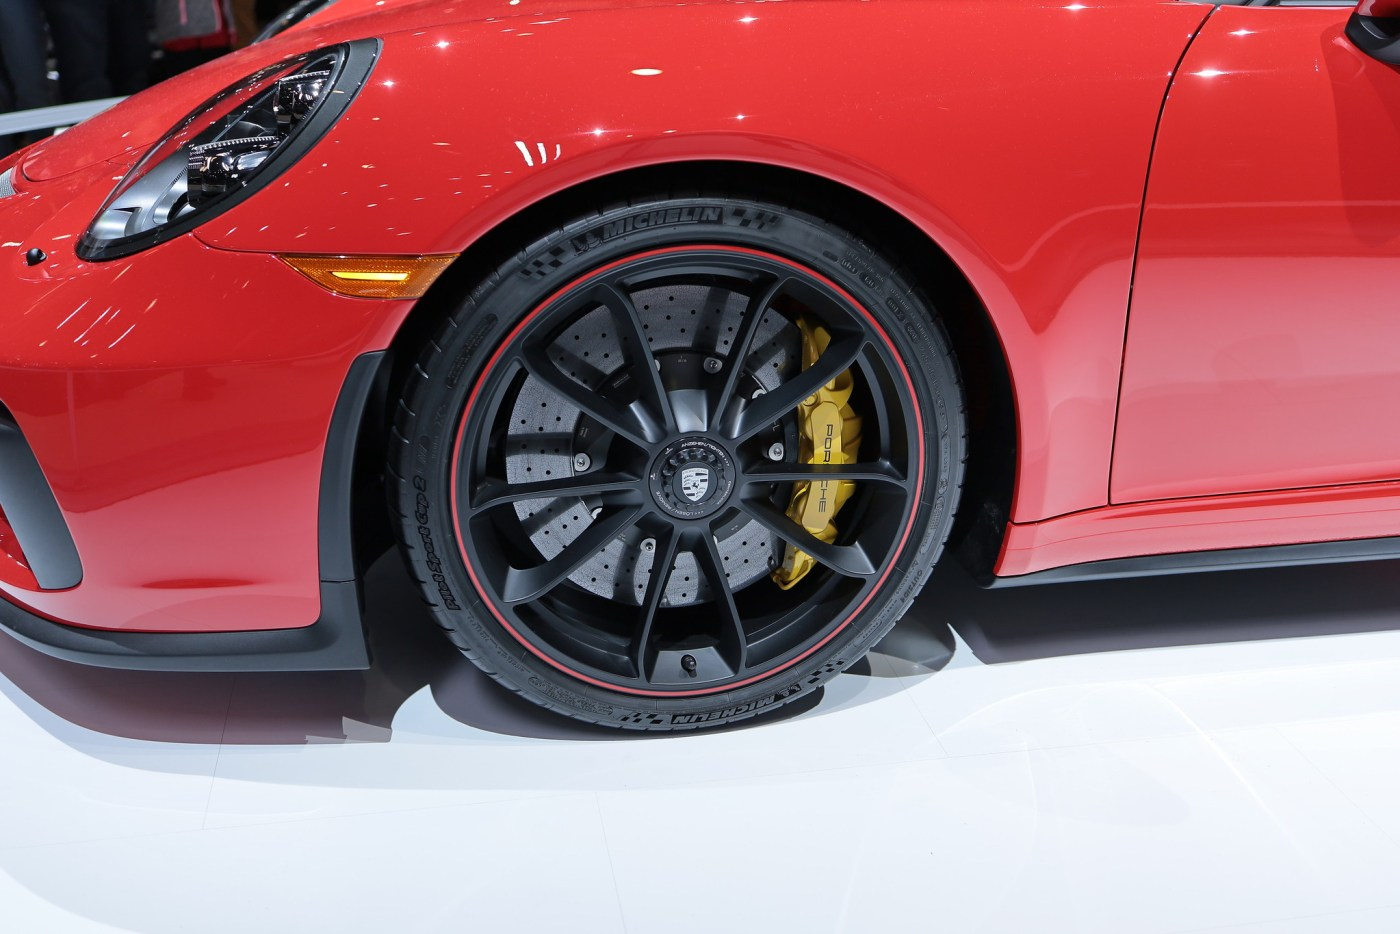 2019 Porsche 911 Speedster wheel close-up